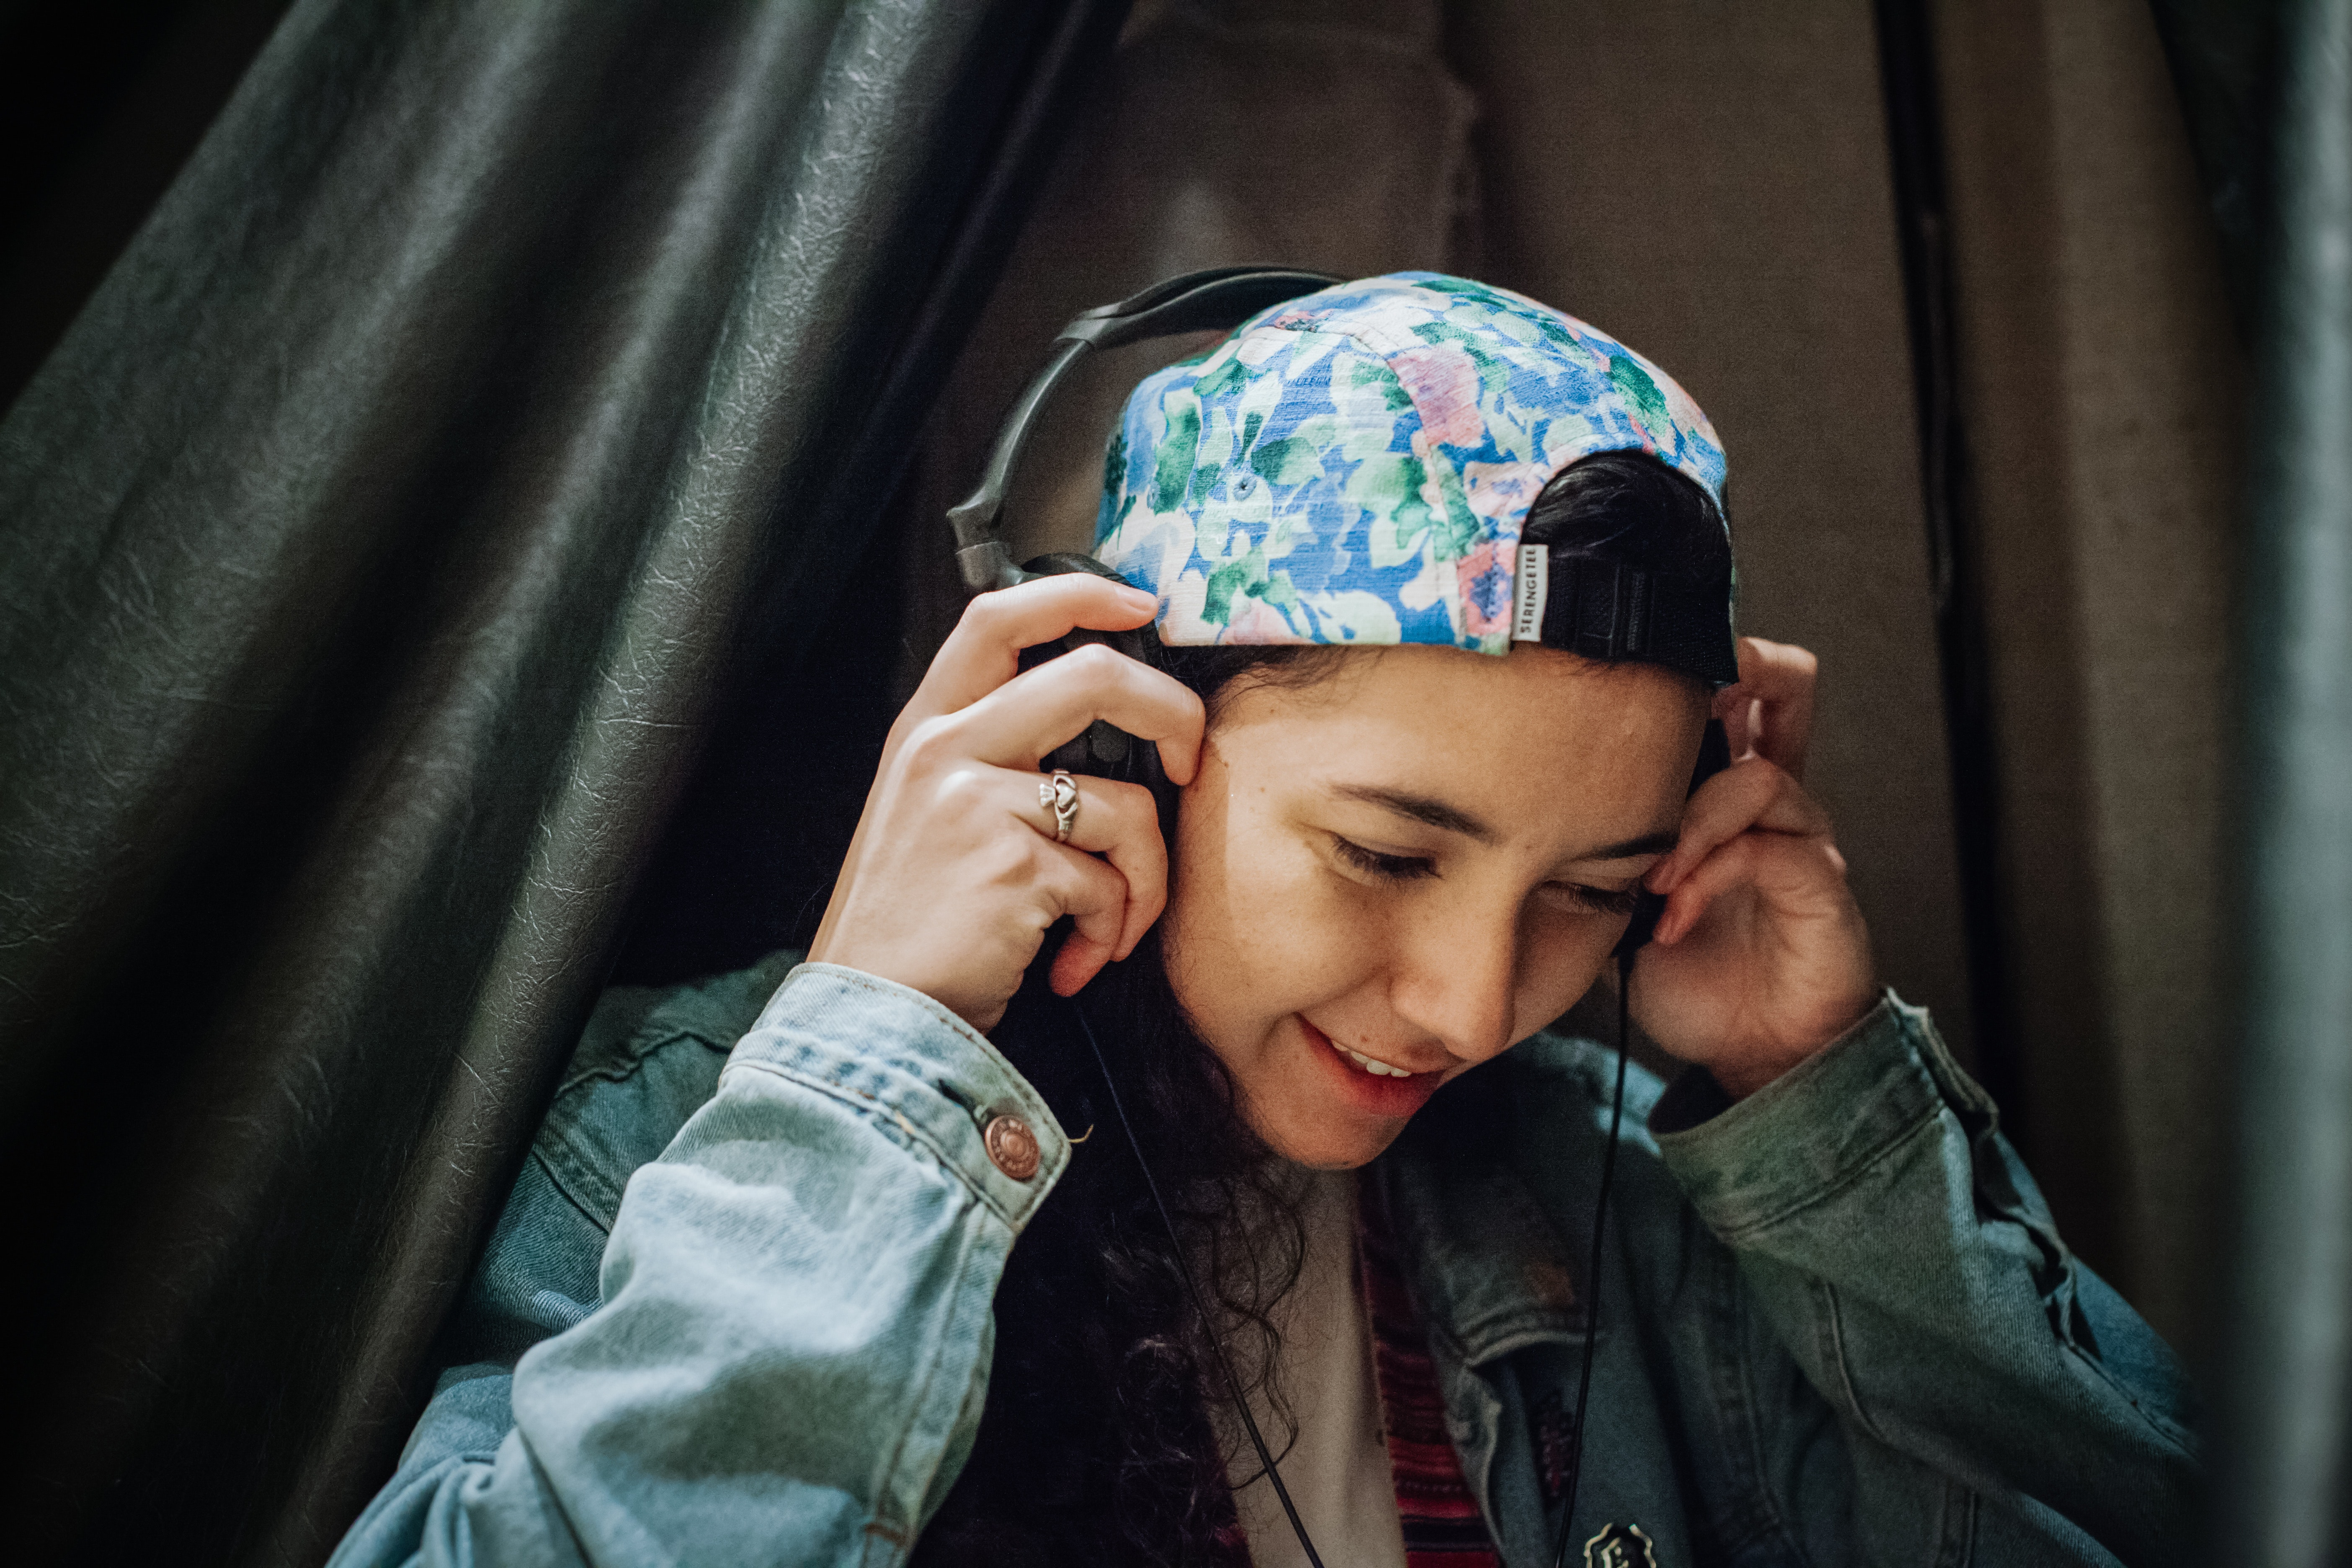 A teen uses headphones in the museum